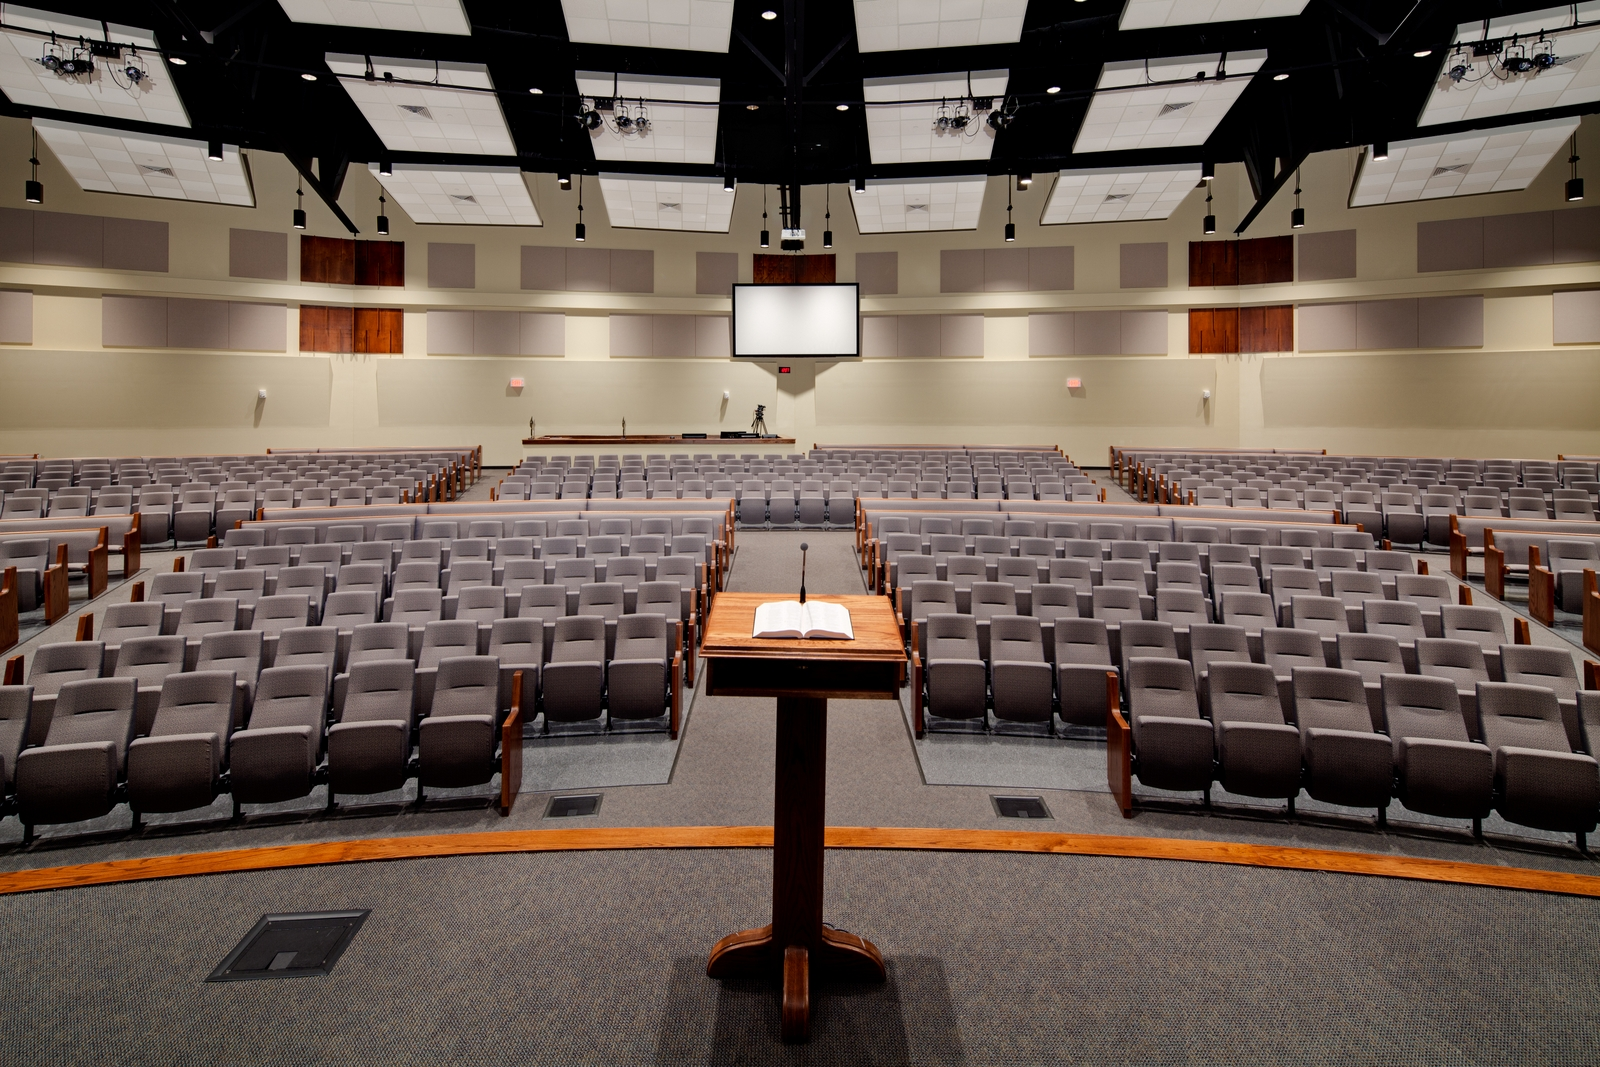 this worship center of 900 seats on a sloped floor has been designed with a REMOVABLE back wall to easily expand to 1,800 withamphitheater seating forCalvary baptist church of Bethlehem (easton), PA. Both phases were designed with excellent sight lines and ACOUSTICS.